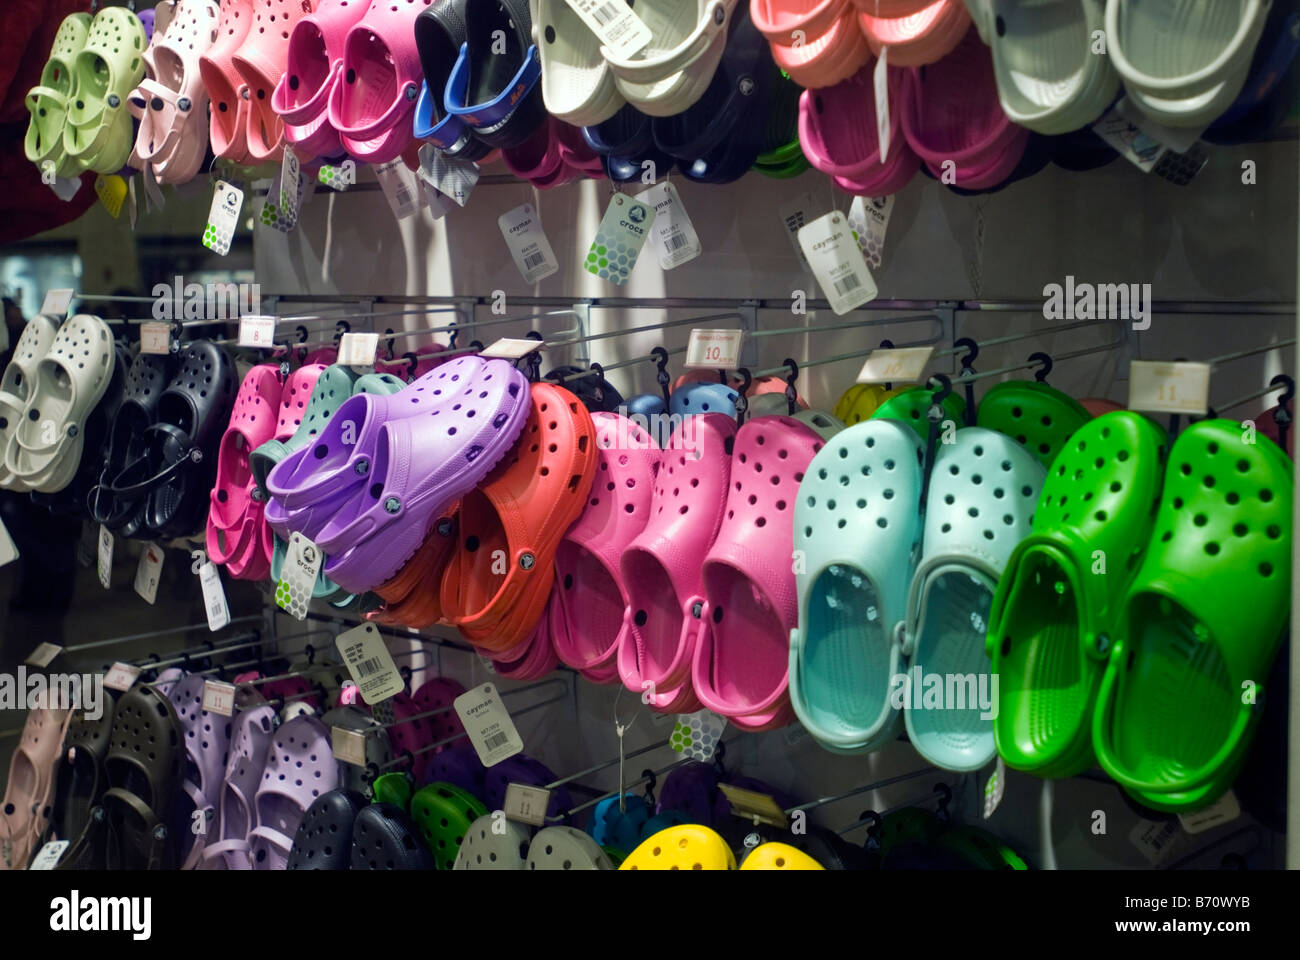 5e00ca3b8 A display of Crocs footwear is seen in a sporting goods store in New York